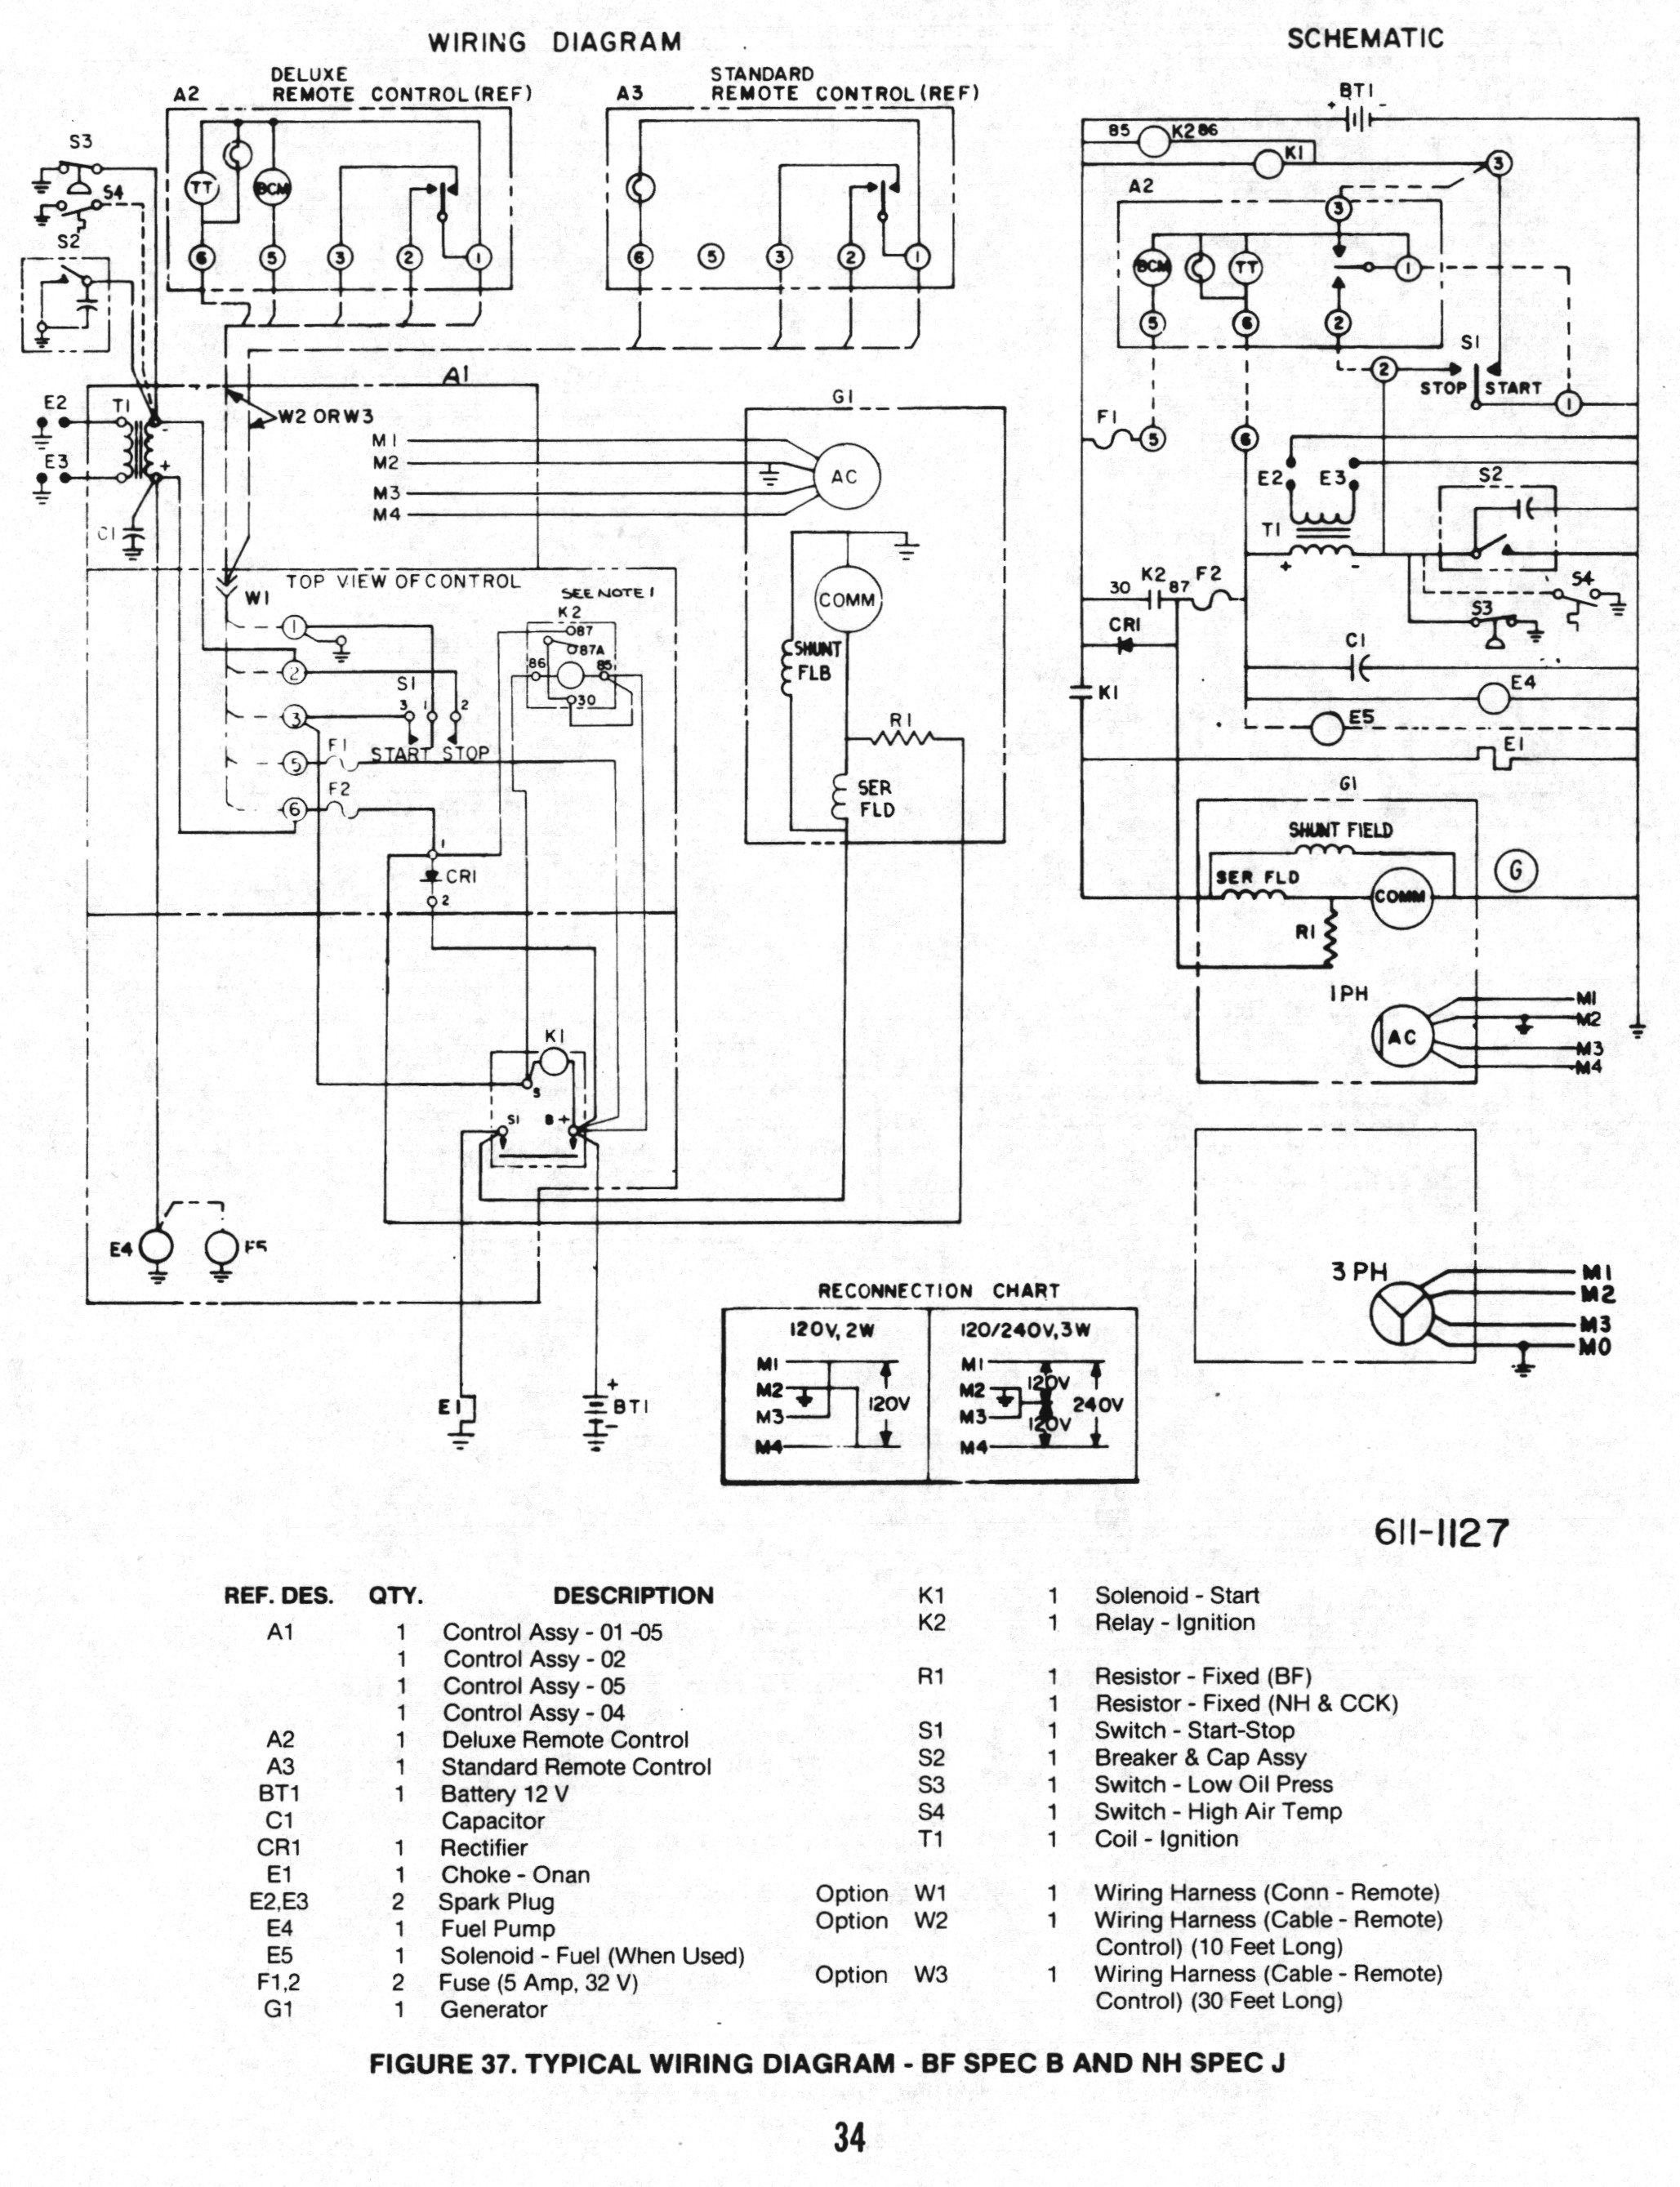 Onan 4500 Commercial Wiring Diagram - Auto Electrical Wiring ... Onan Generator Wiring Diagram on